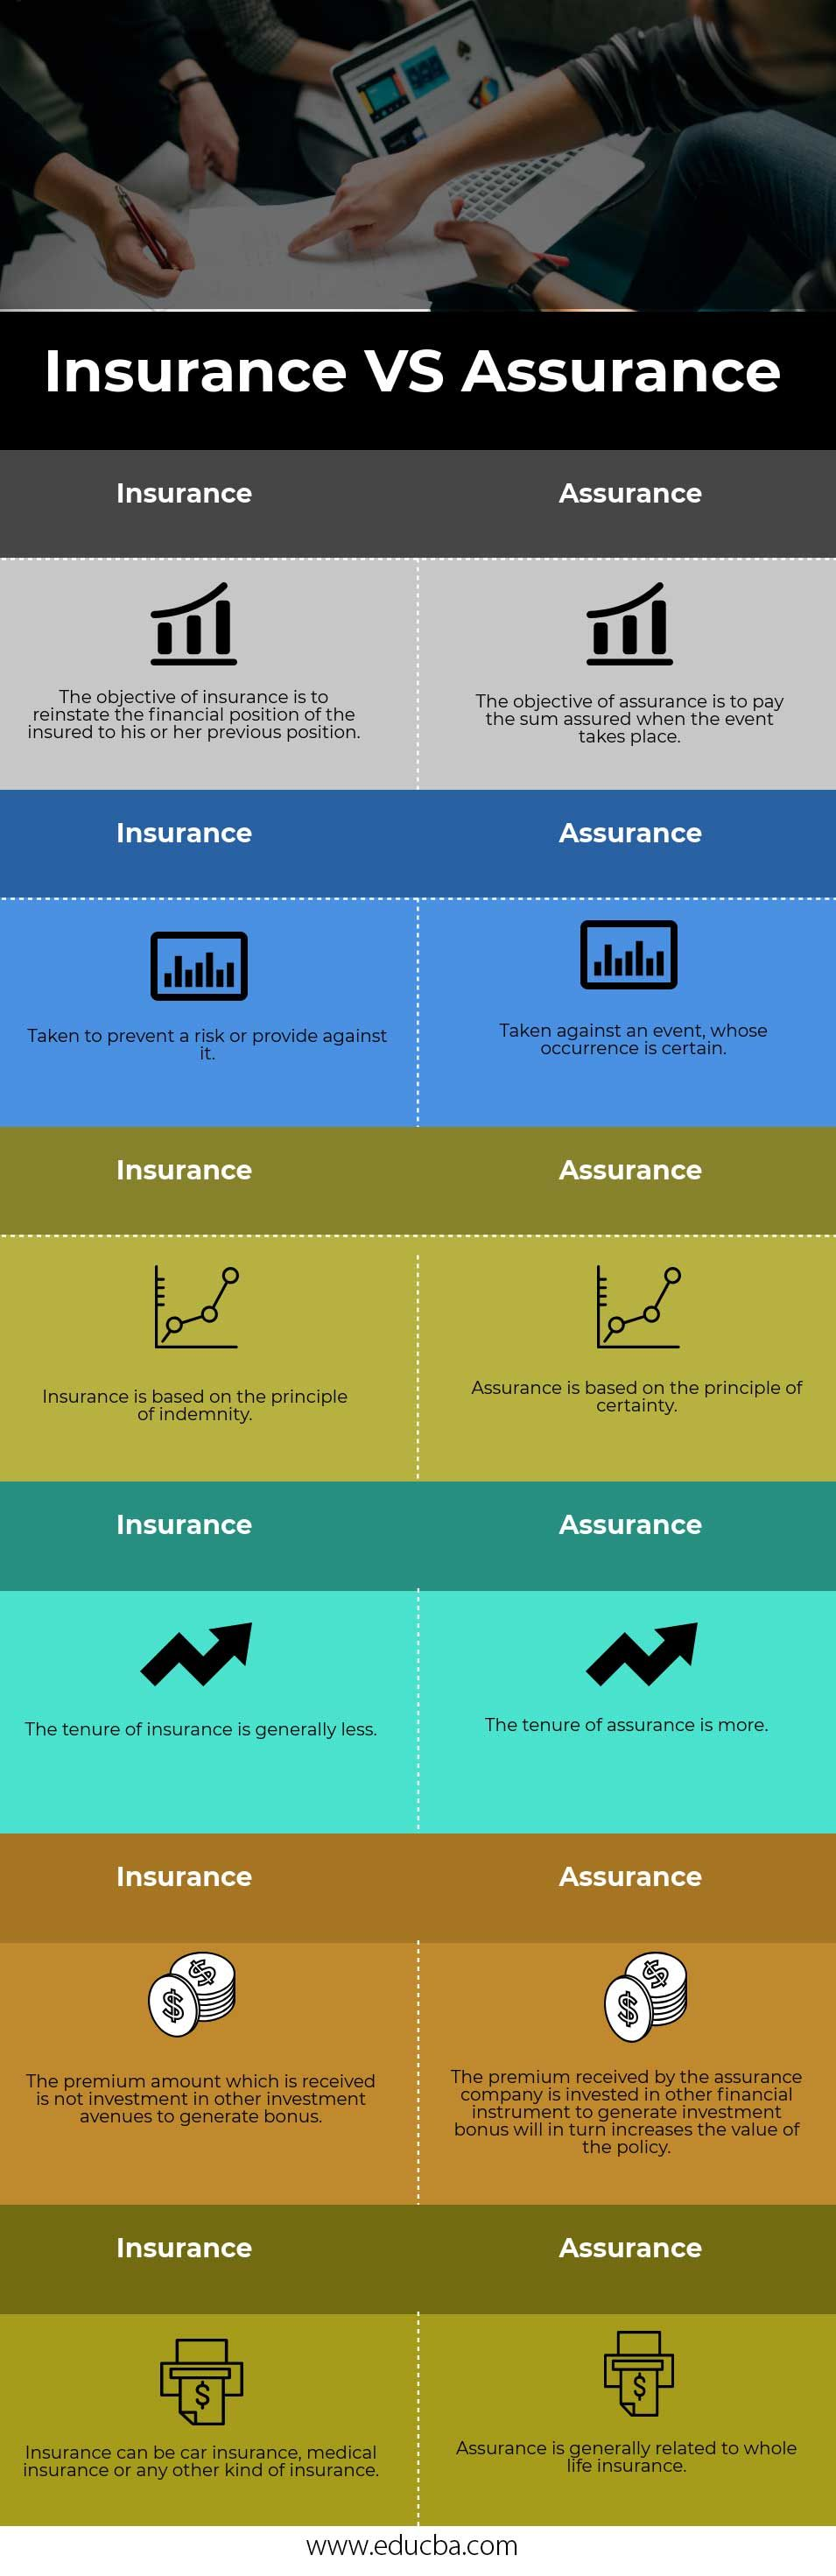 Insurance Vs Assurance With Images Equity Financial